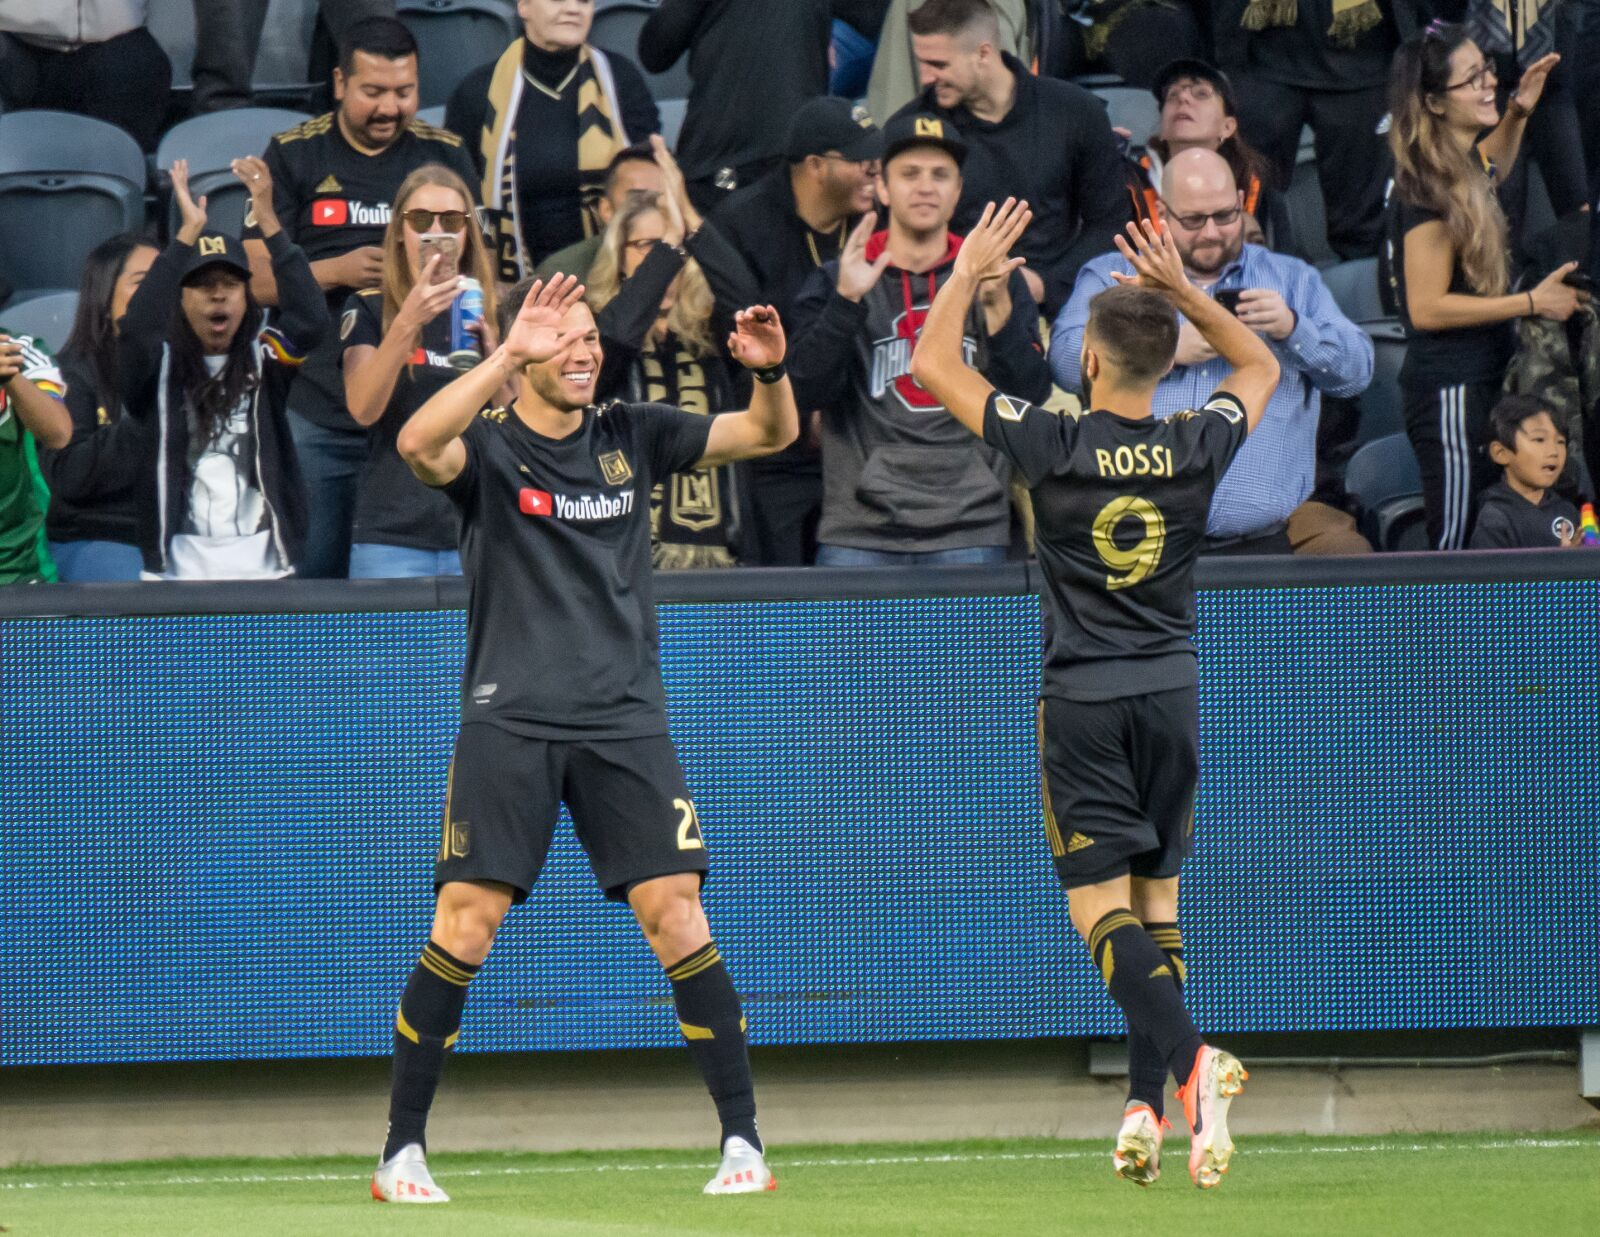 7485f7110cc LAFC Vs Montreal Impact  3 things we learned - Same old dominance